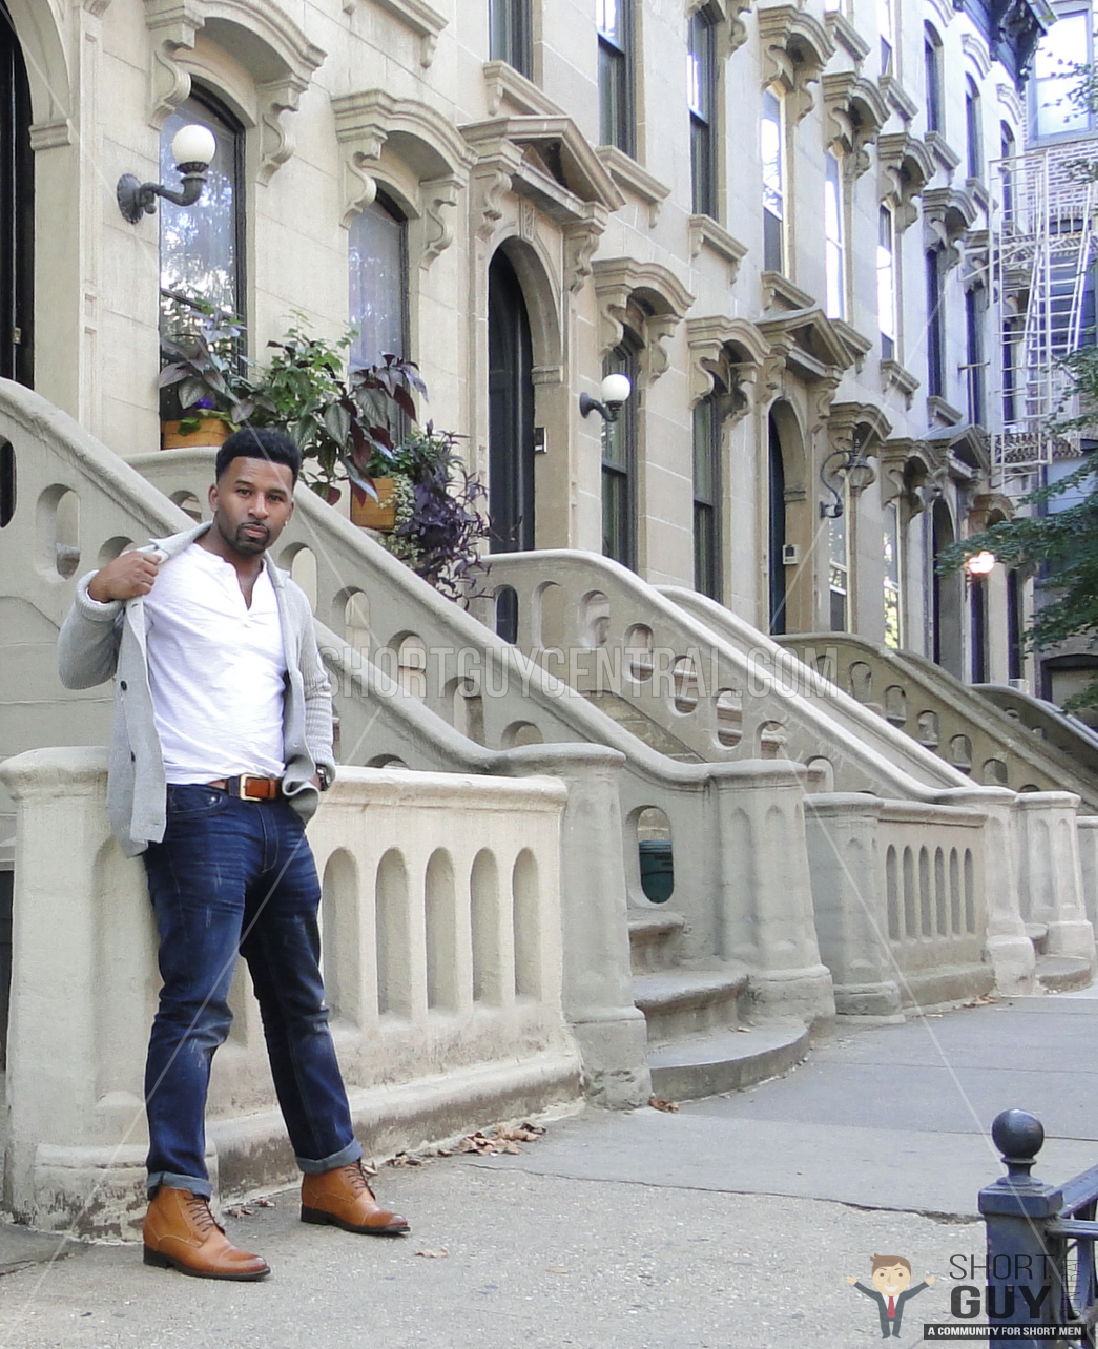 Fashion For Short Men: Guidomaggi Luxury Elevator Shoes - The Staten Island | ShortGuyCentral